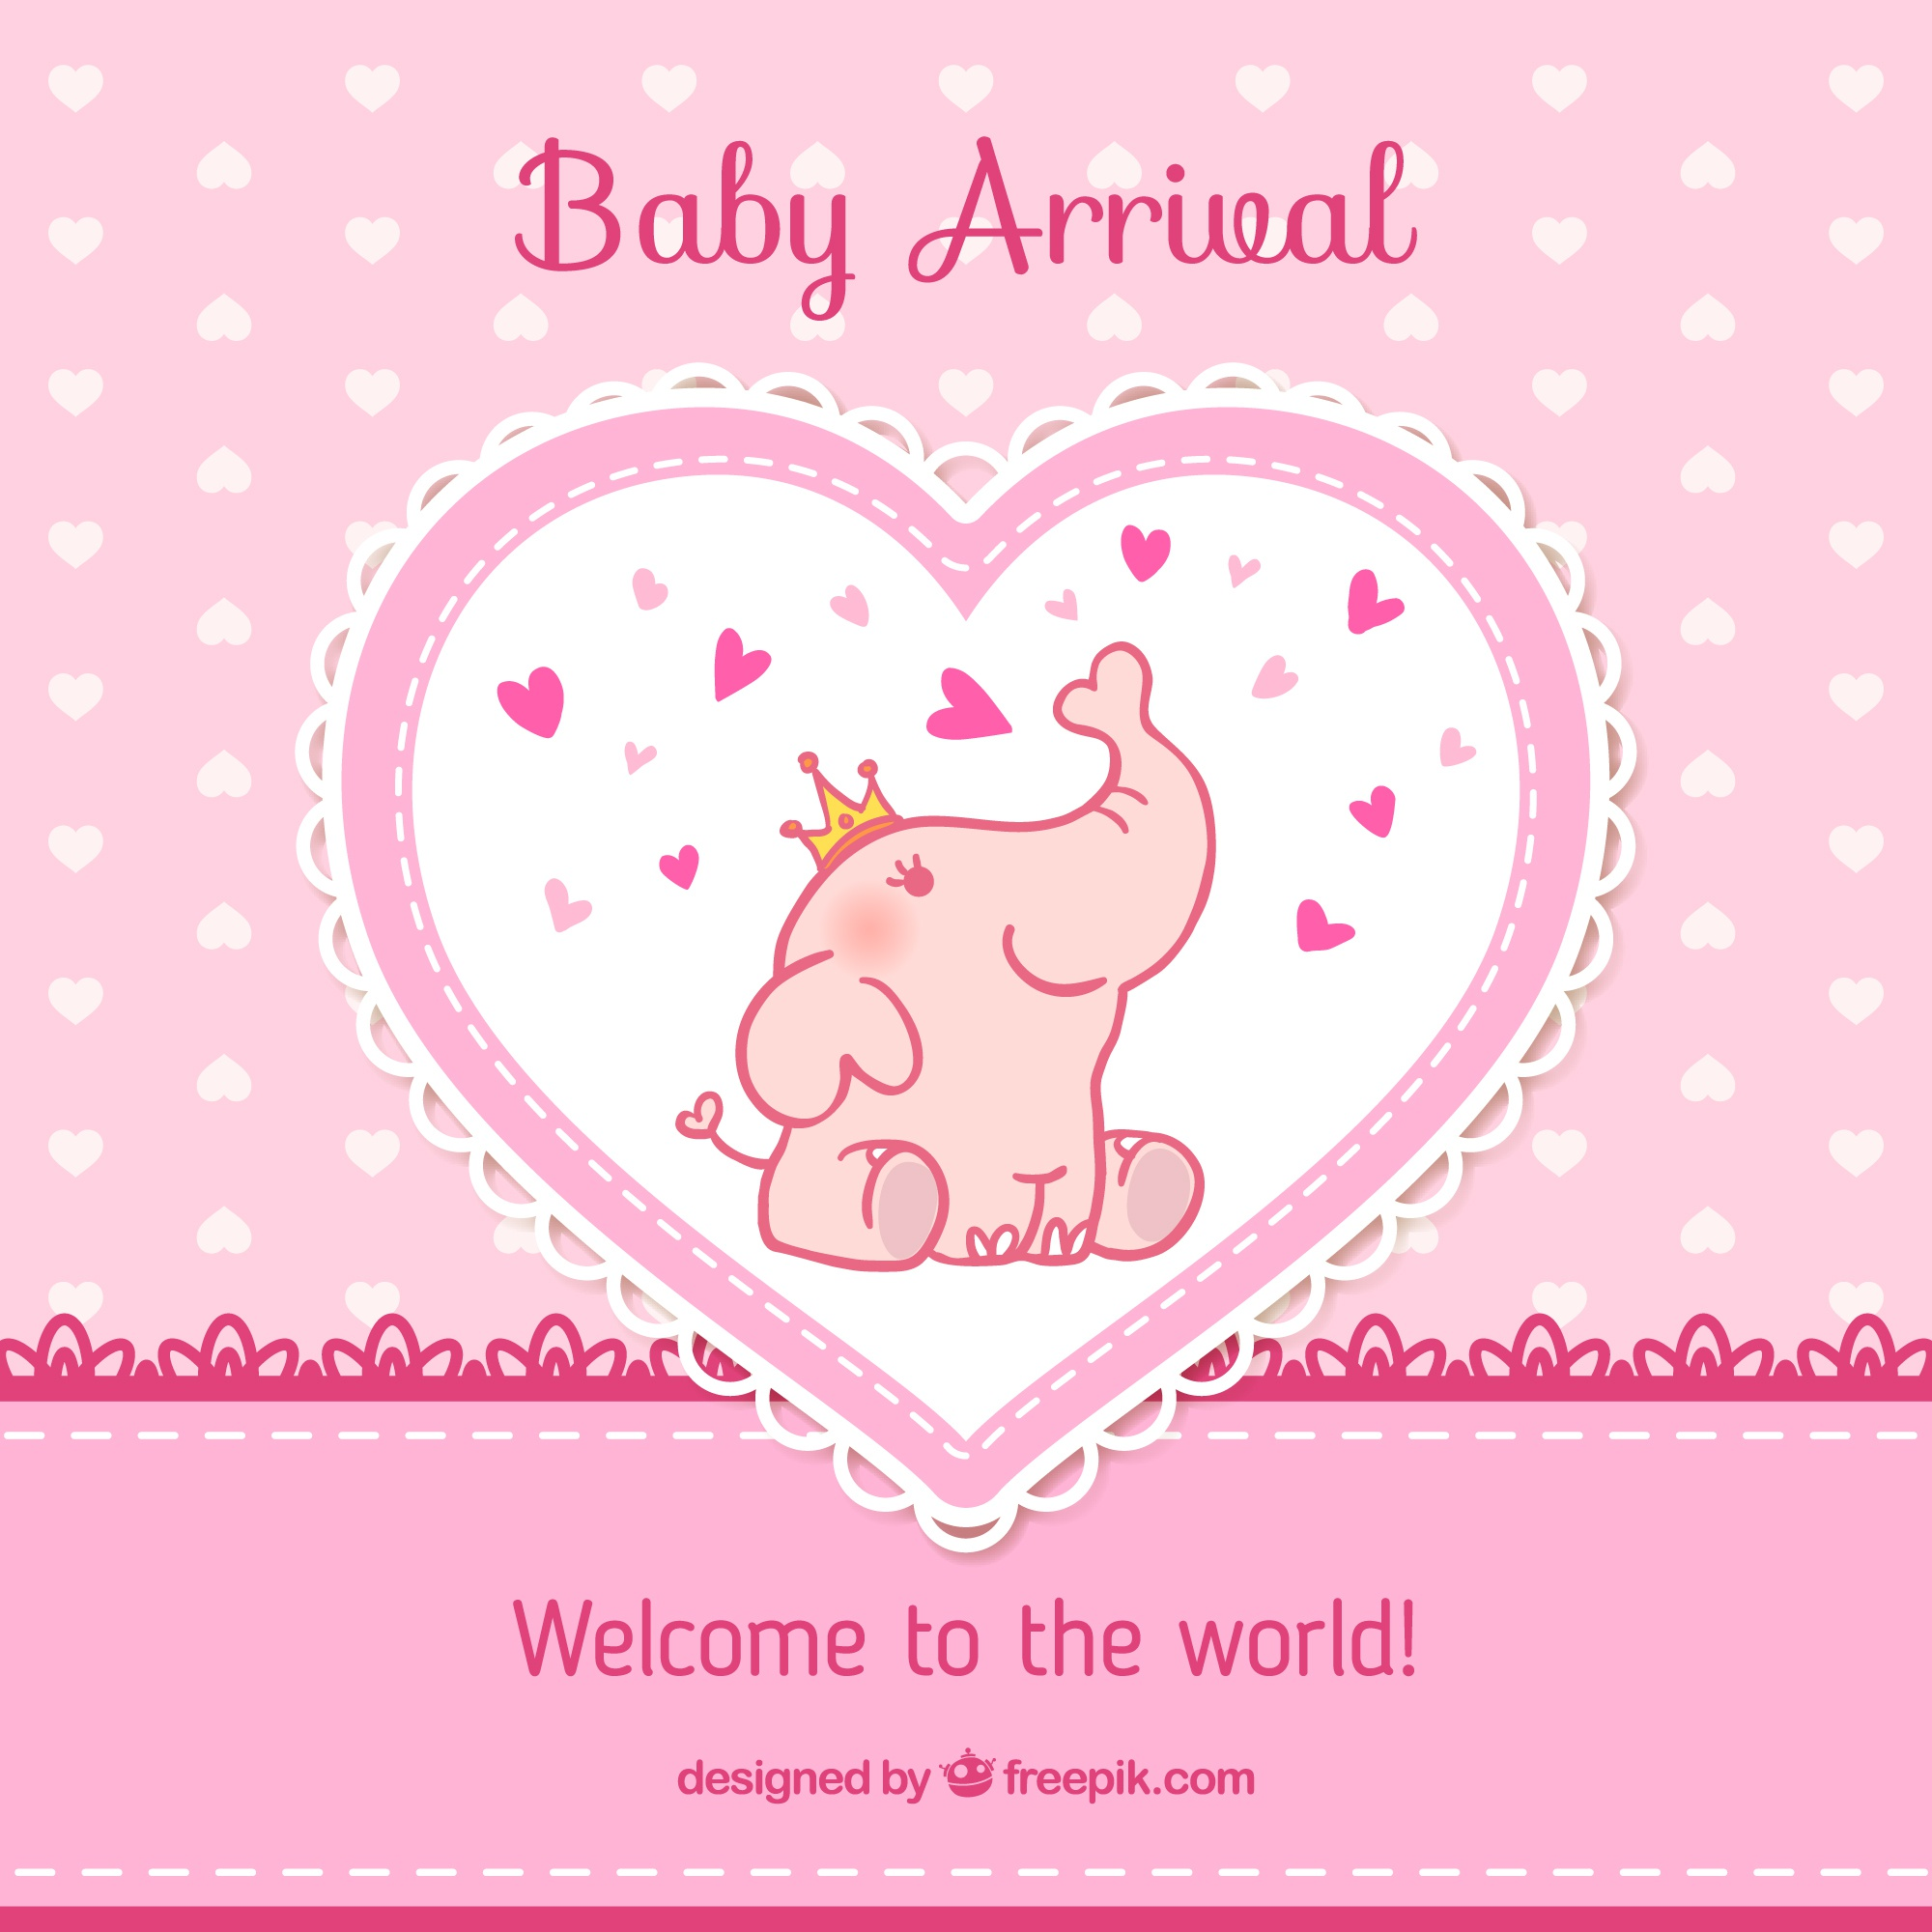 Baby arrival card in pink tones